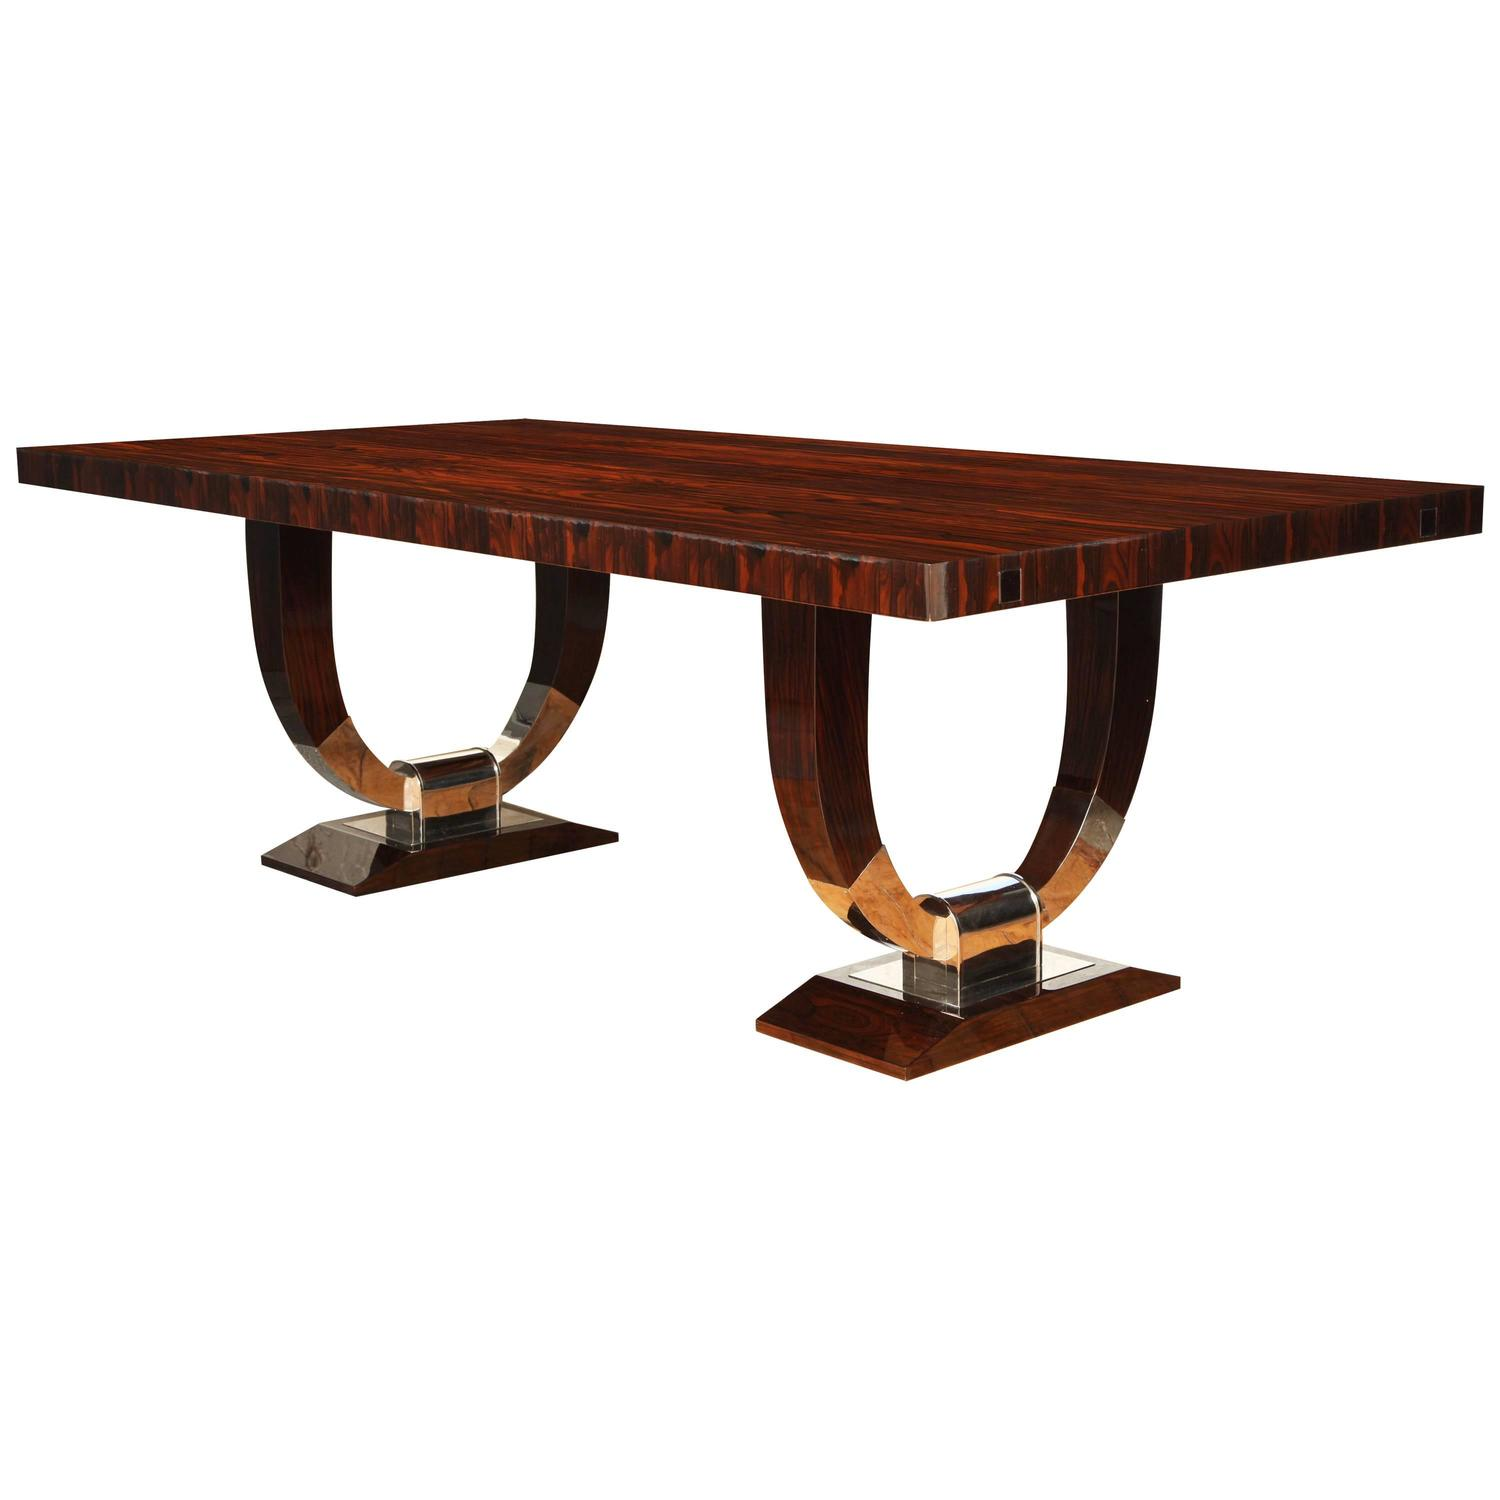 elegant art deco dining table at 1stdibs. Black Bedroom Furniture Sets. Home Design Ideas